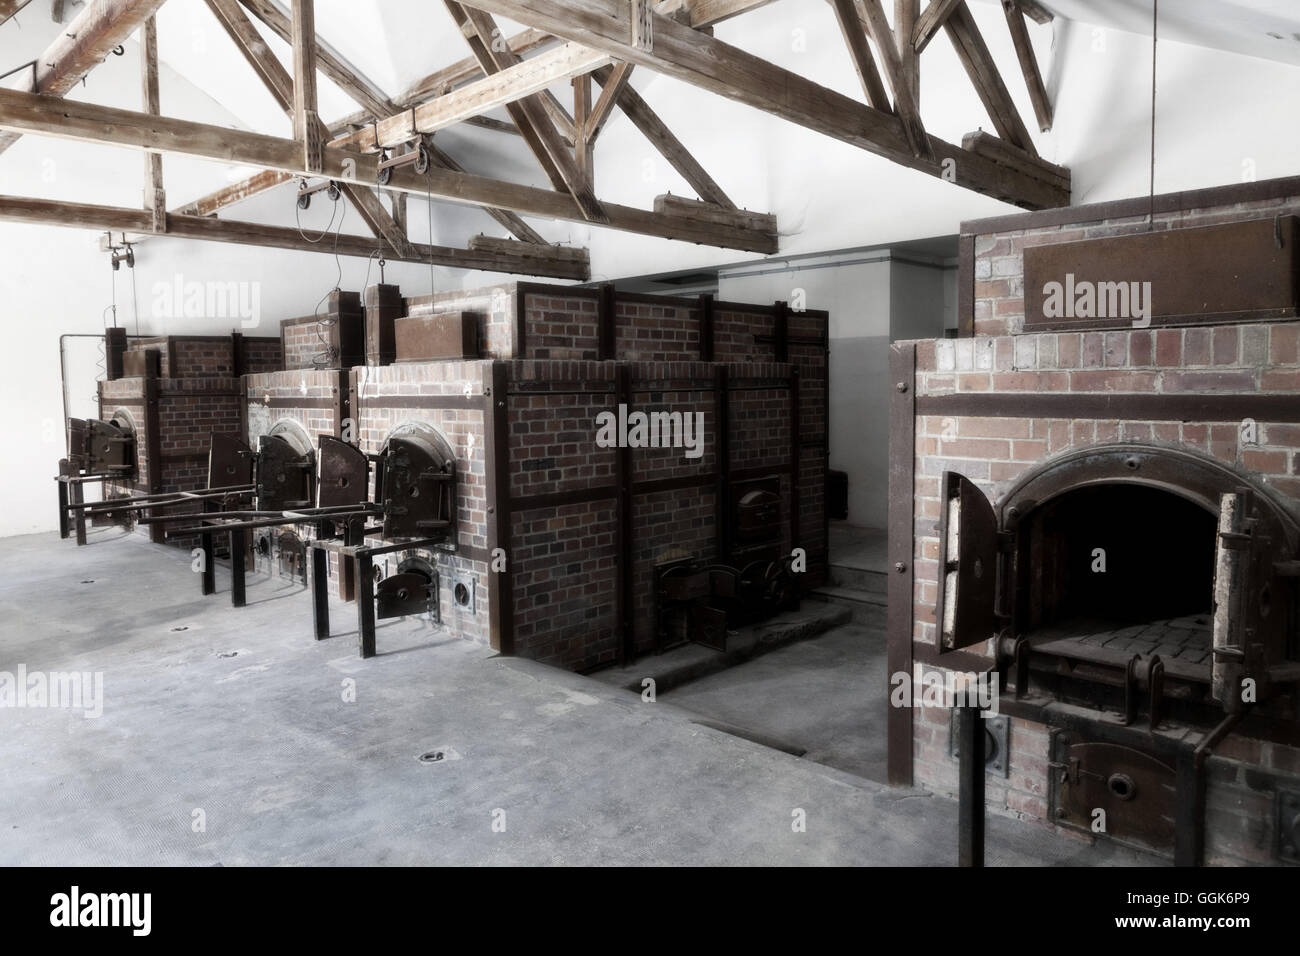 Infamous crematorium, Dachau Concentration Camp, Dachau, Munich, Bavaria, Germany - Stock Image